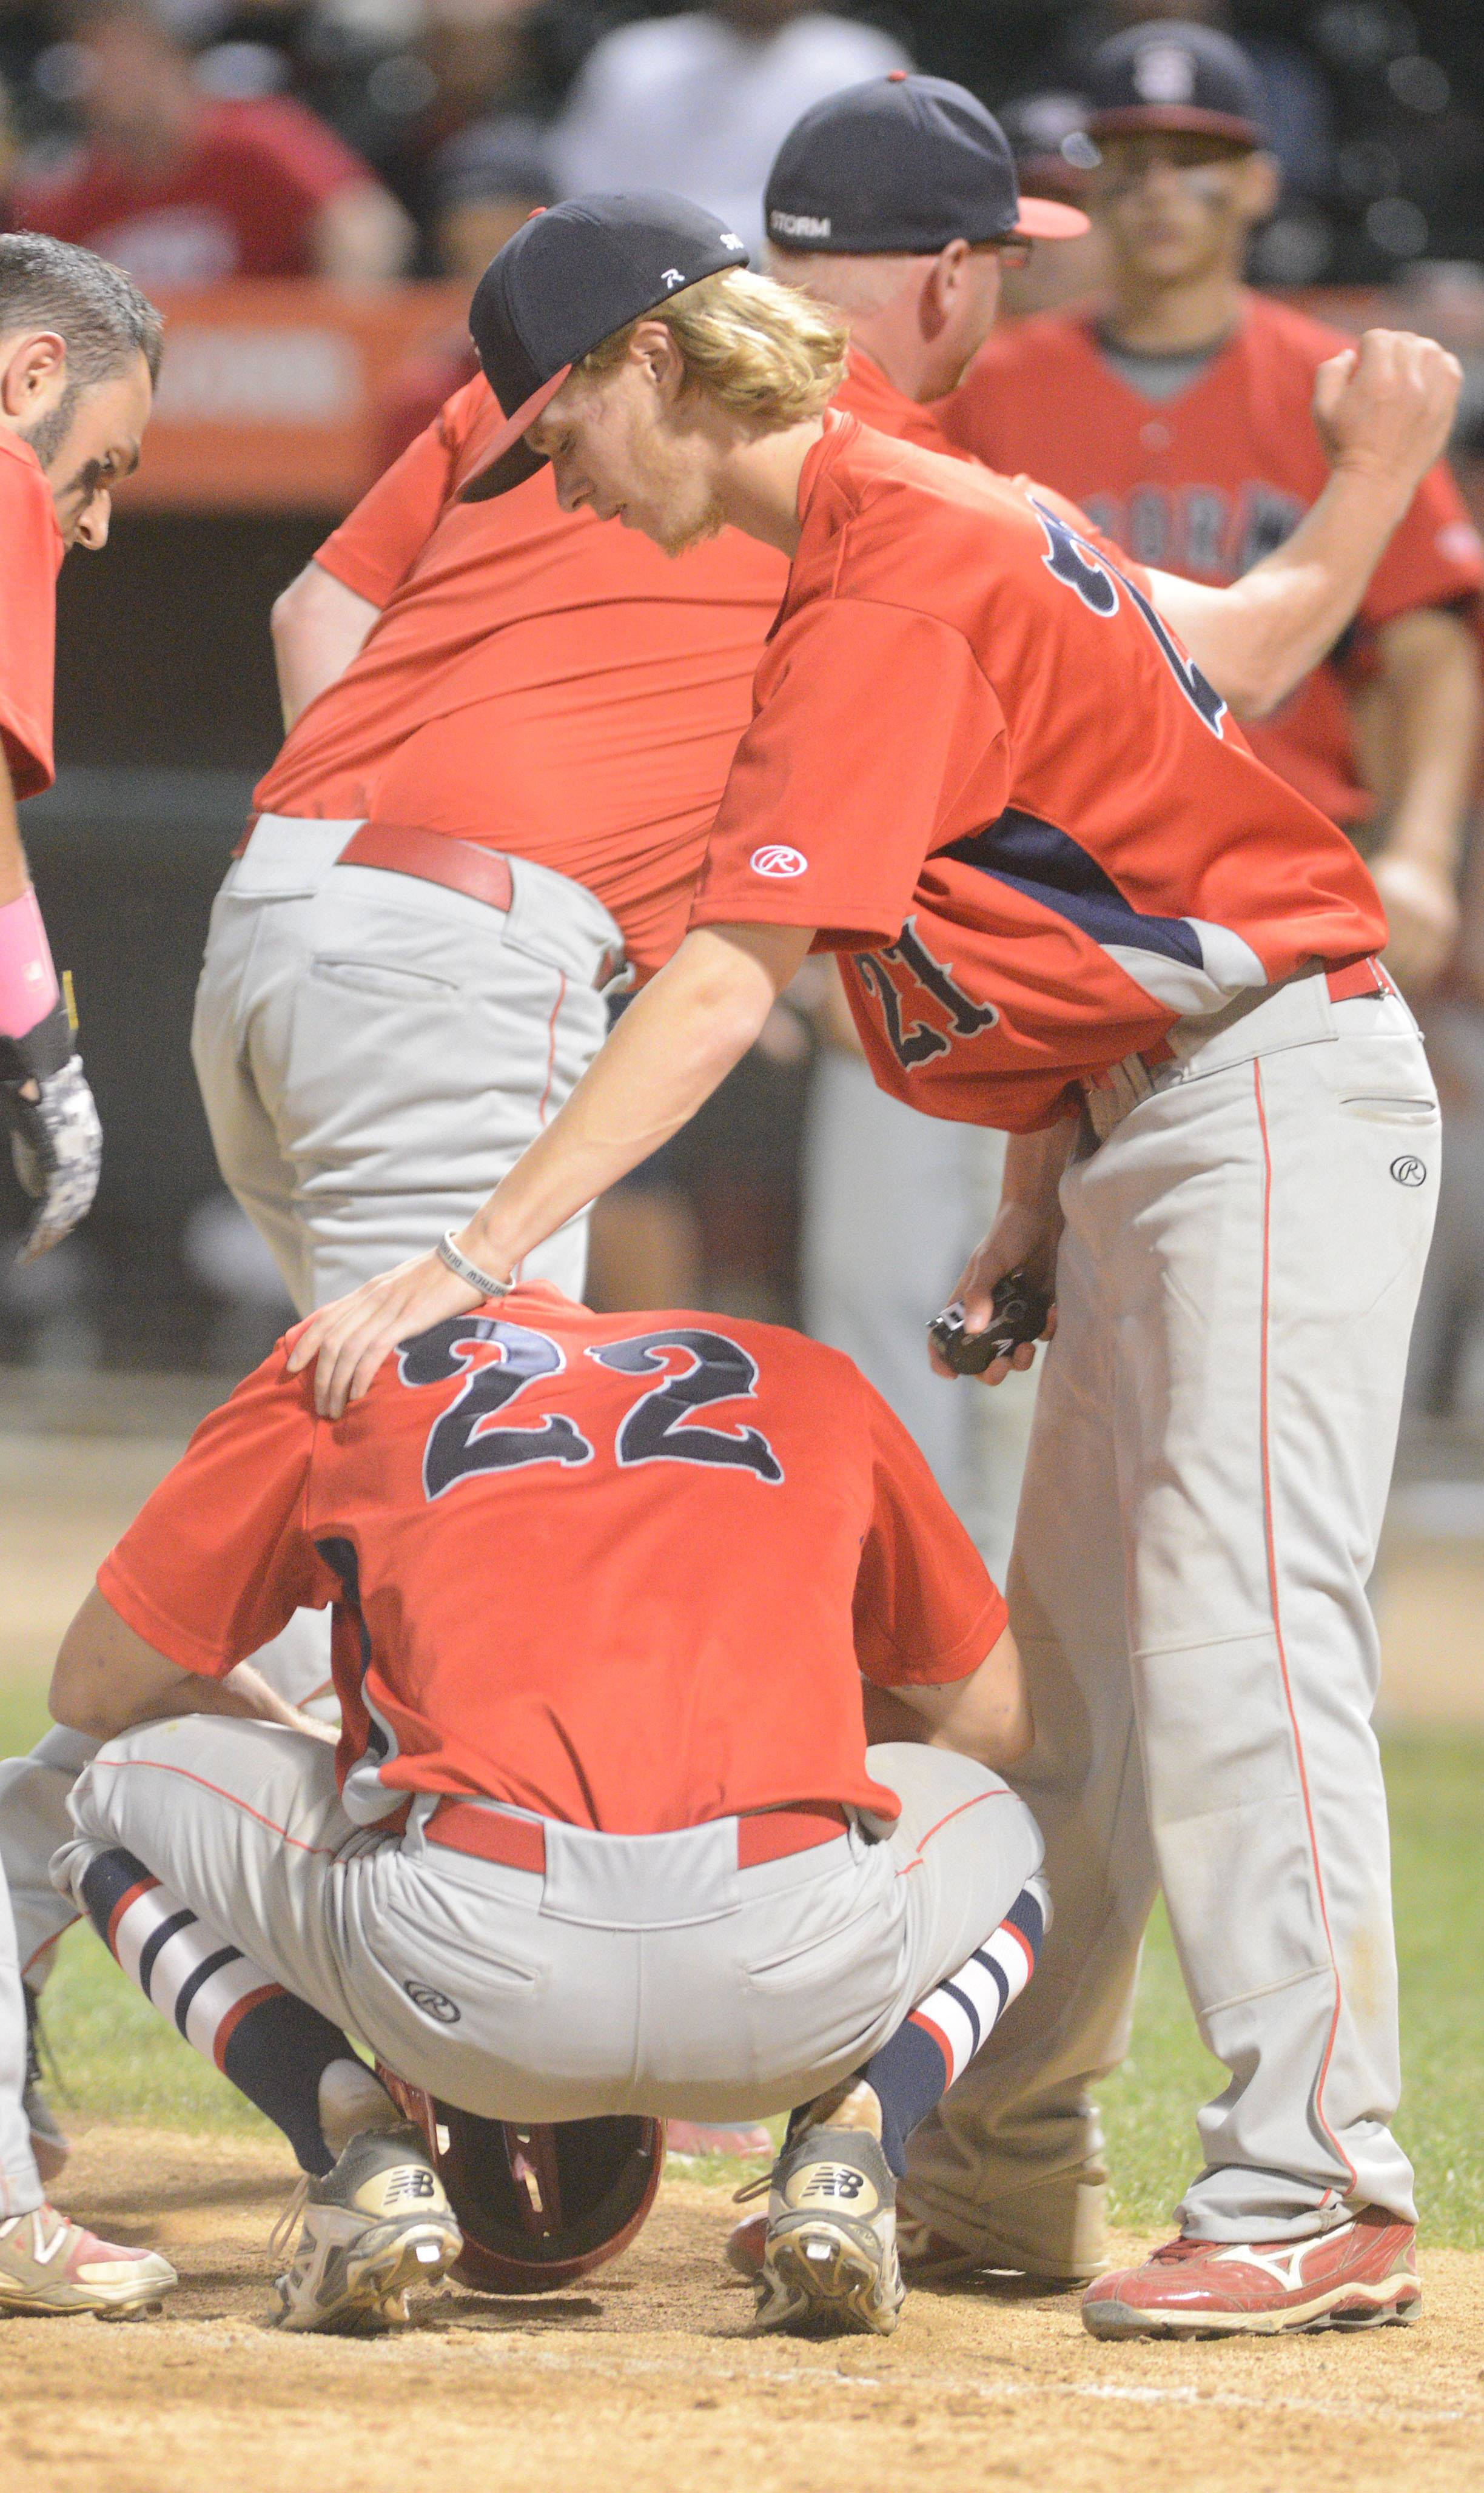 Craig Kelly (21) comforts teammate Ryan Nutof (22) after South Elgin's 3-2 loss to St. Rita in the Class 4A state semifinals Friday in Joliet.